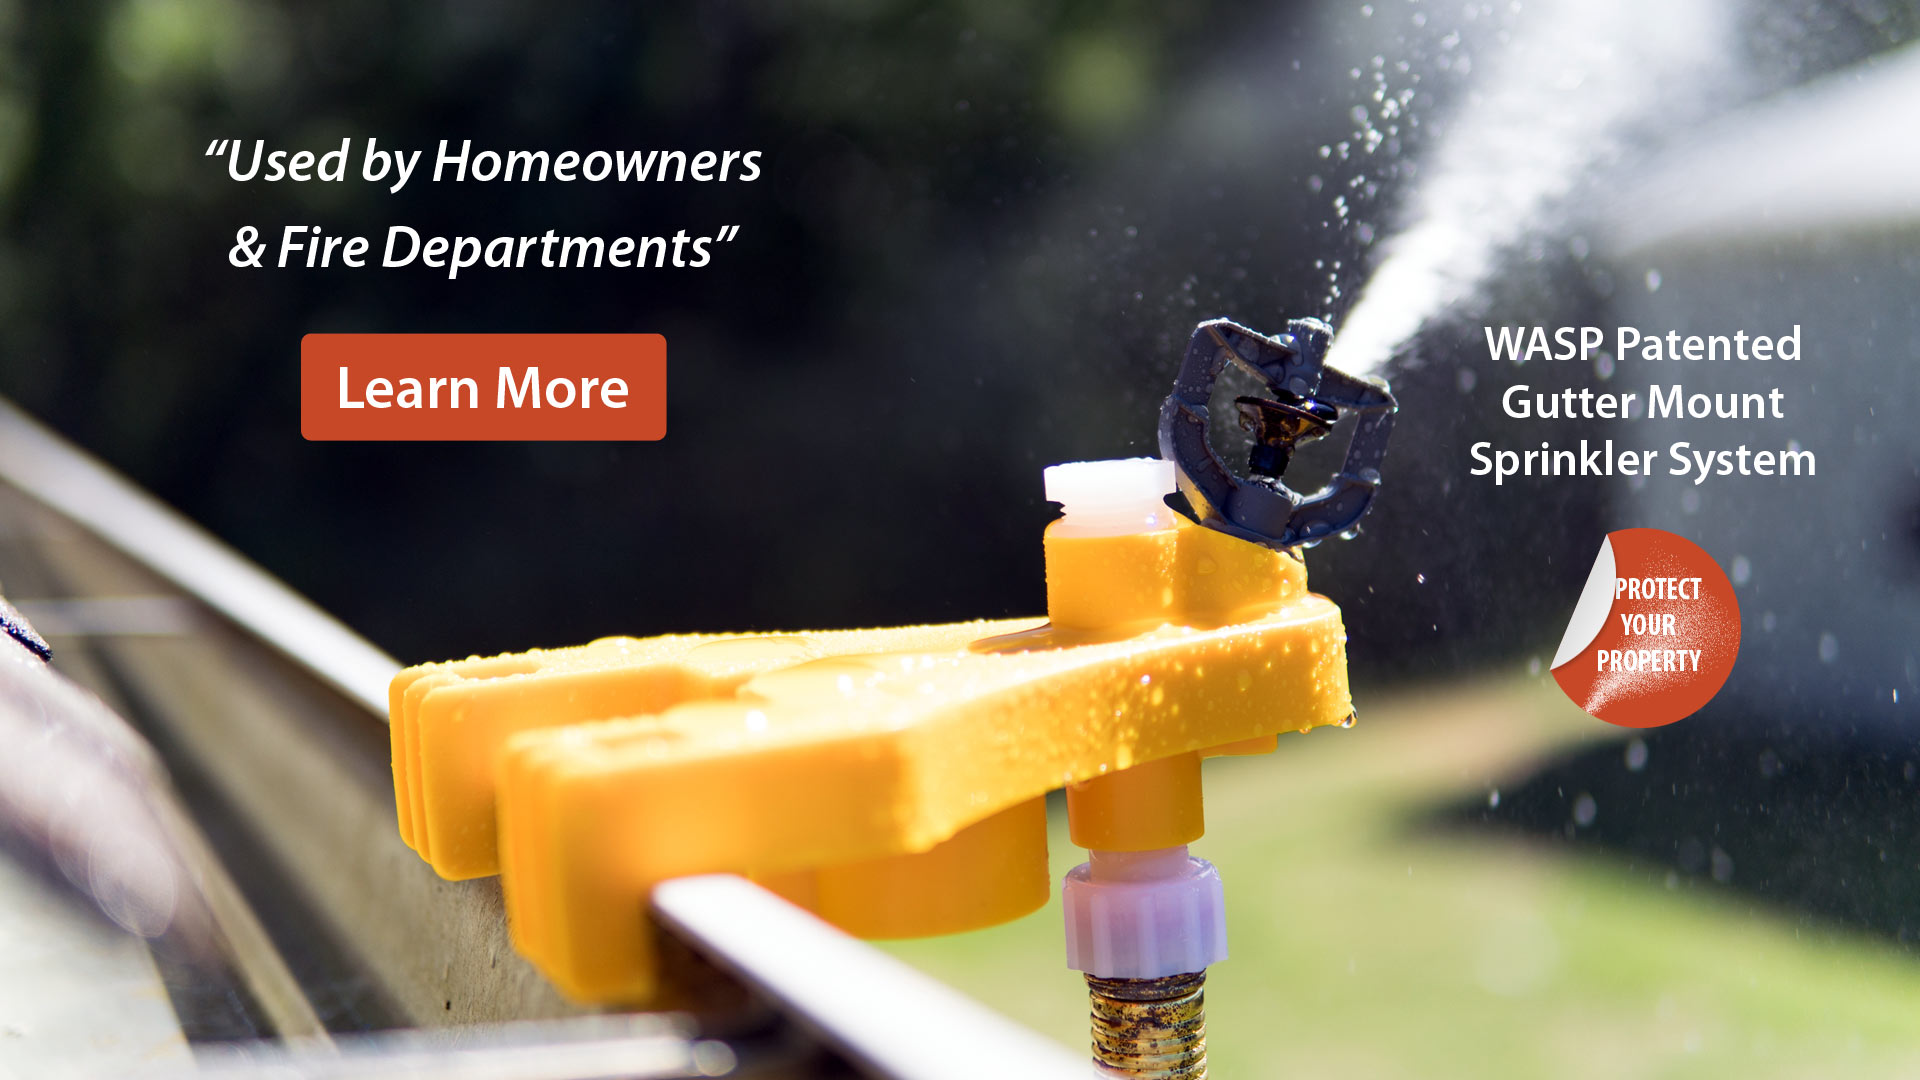 Learn about the gutter mount sprinkler system